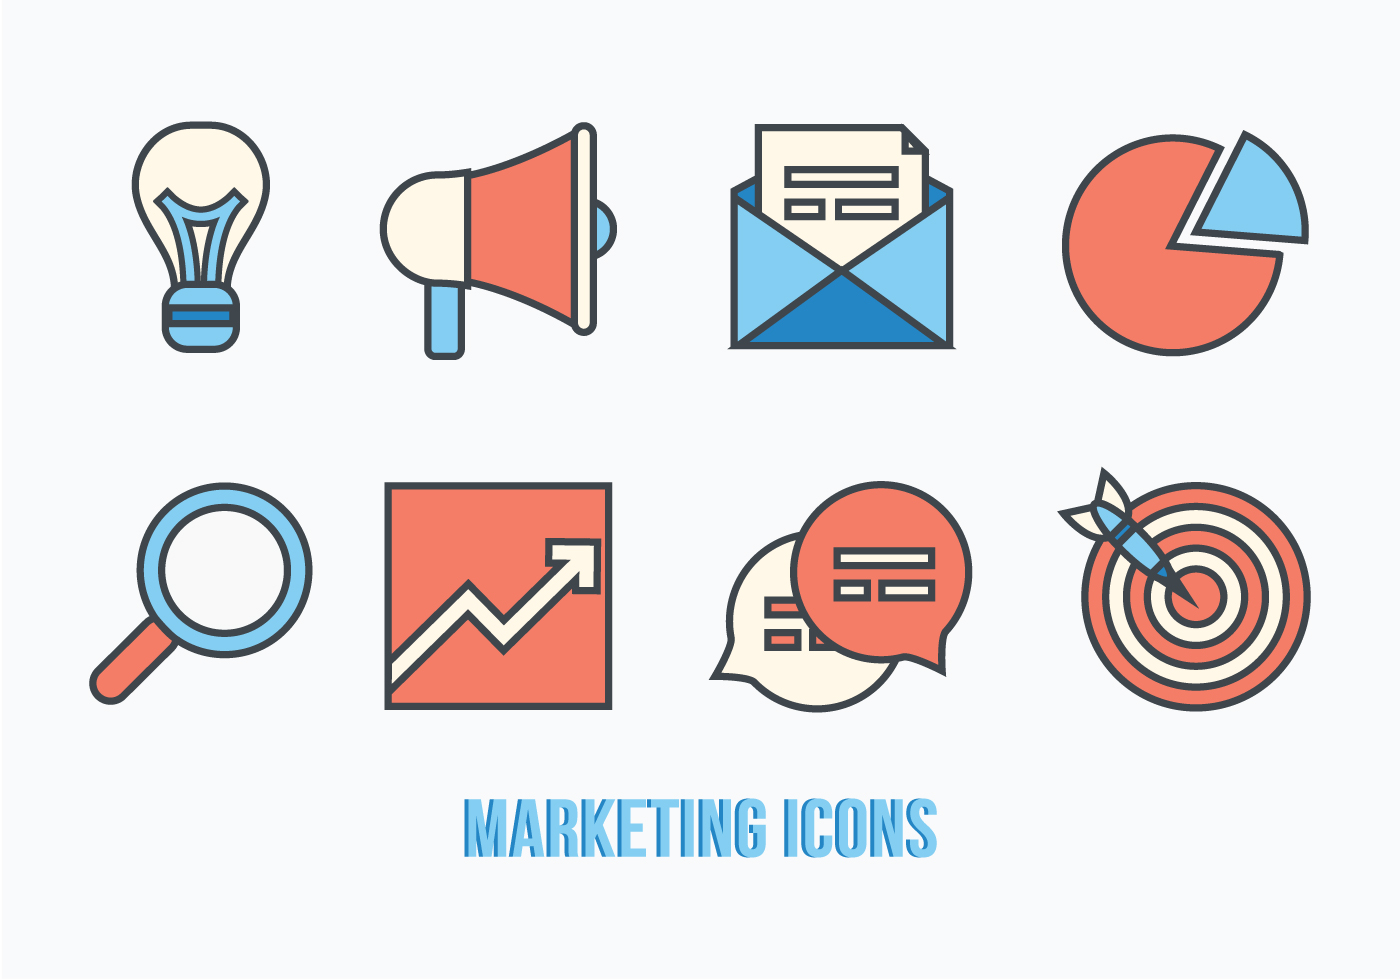 marketing-icons-vector-pack.jpg